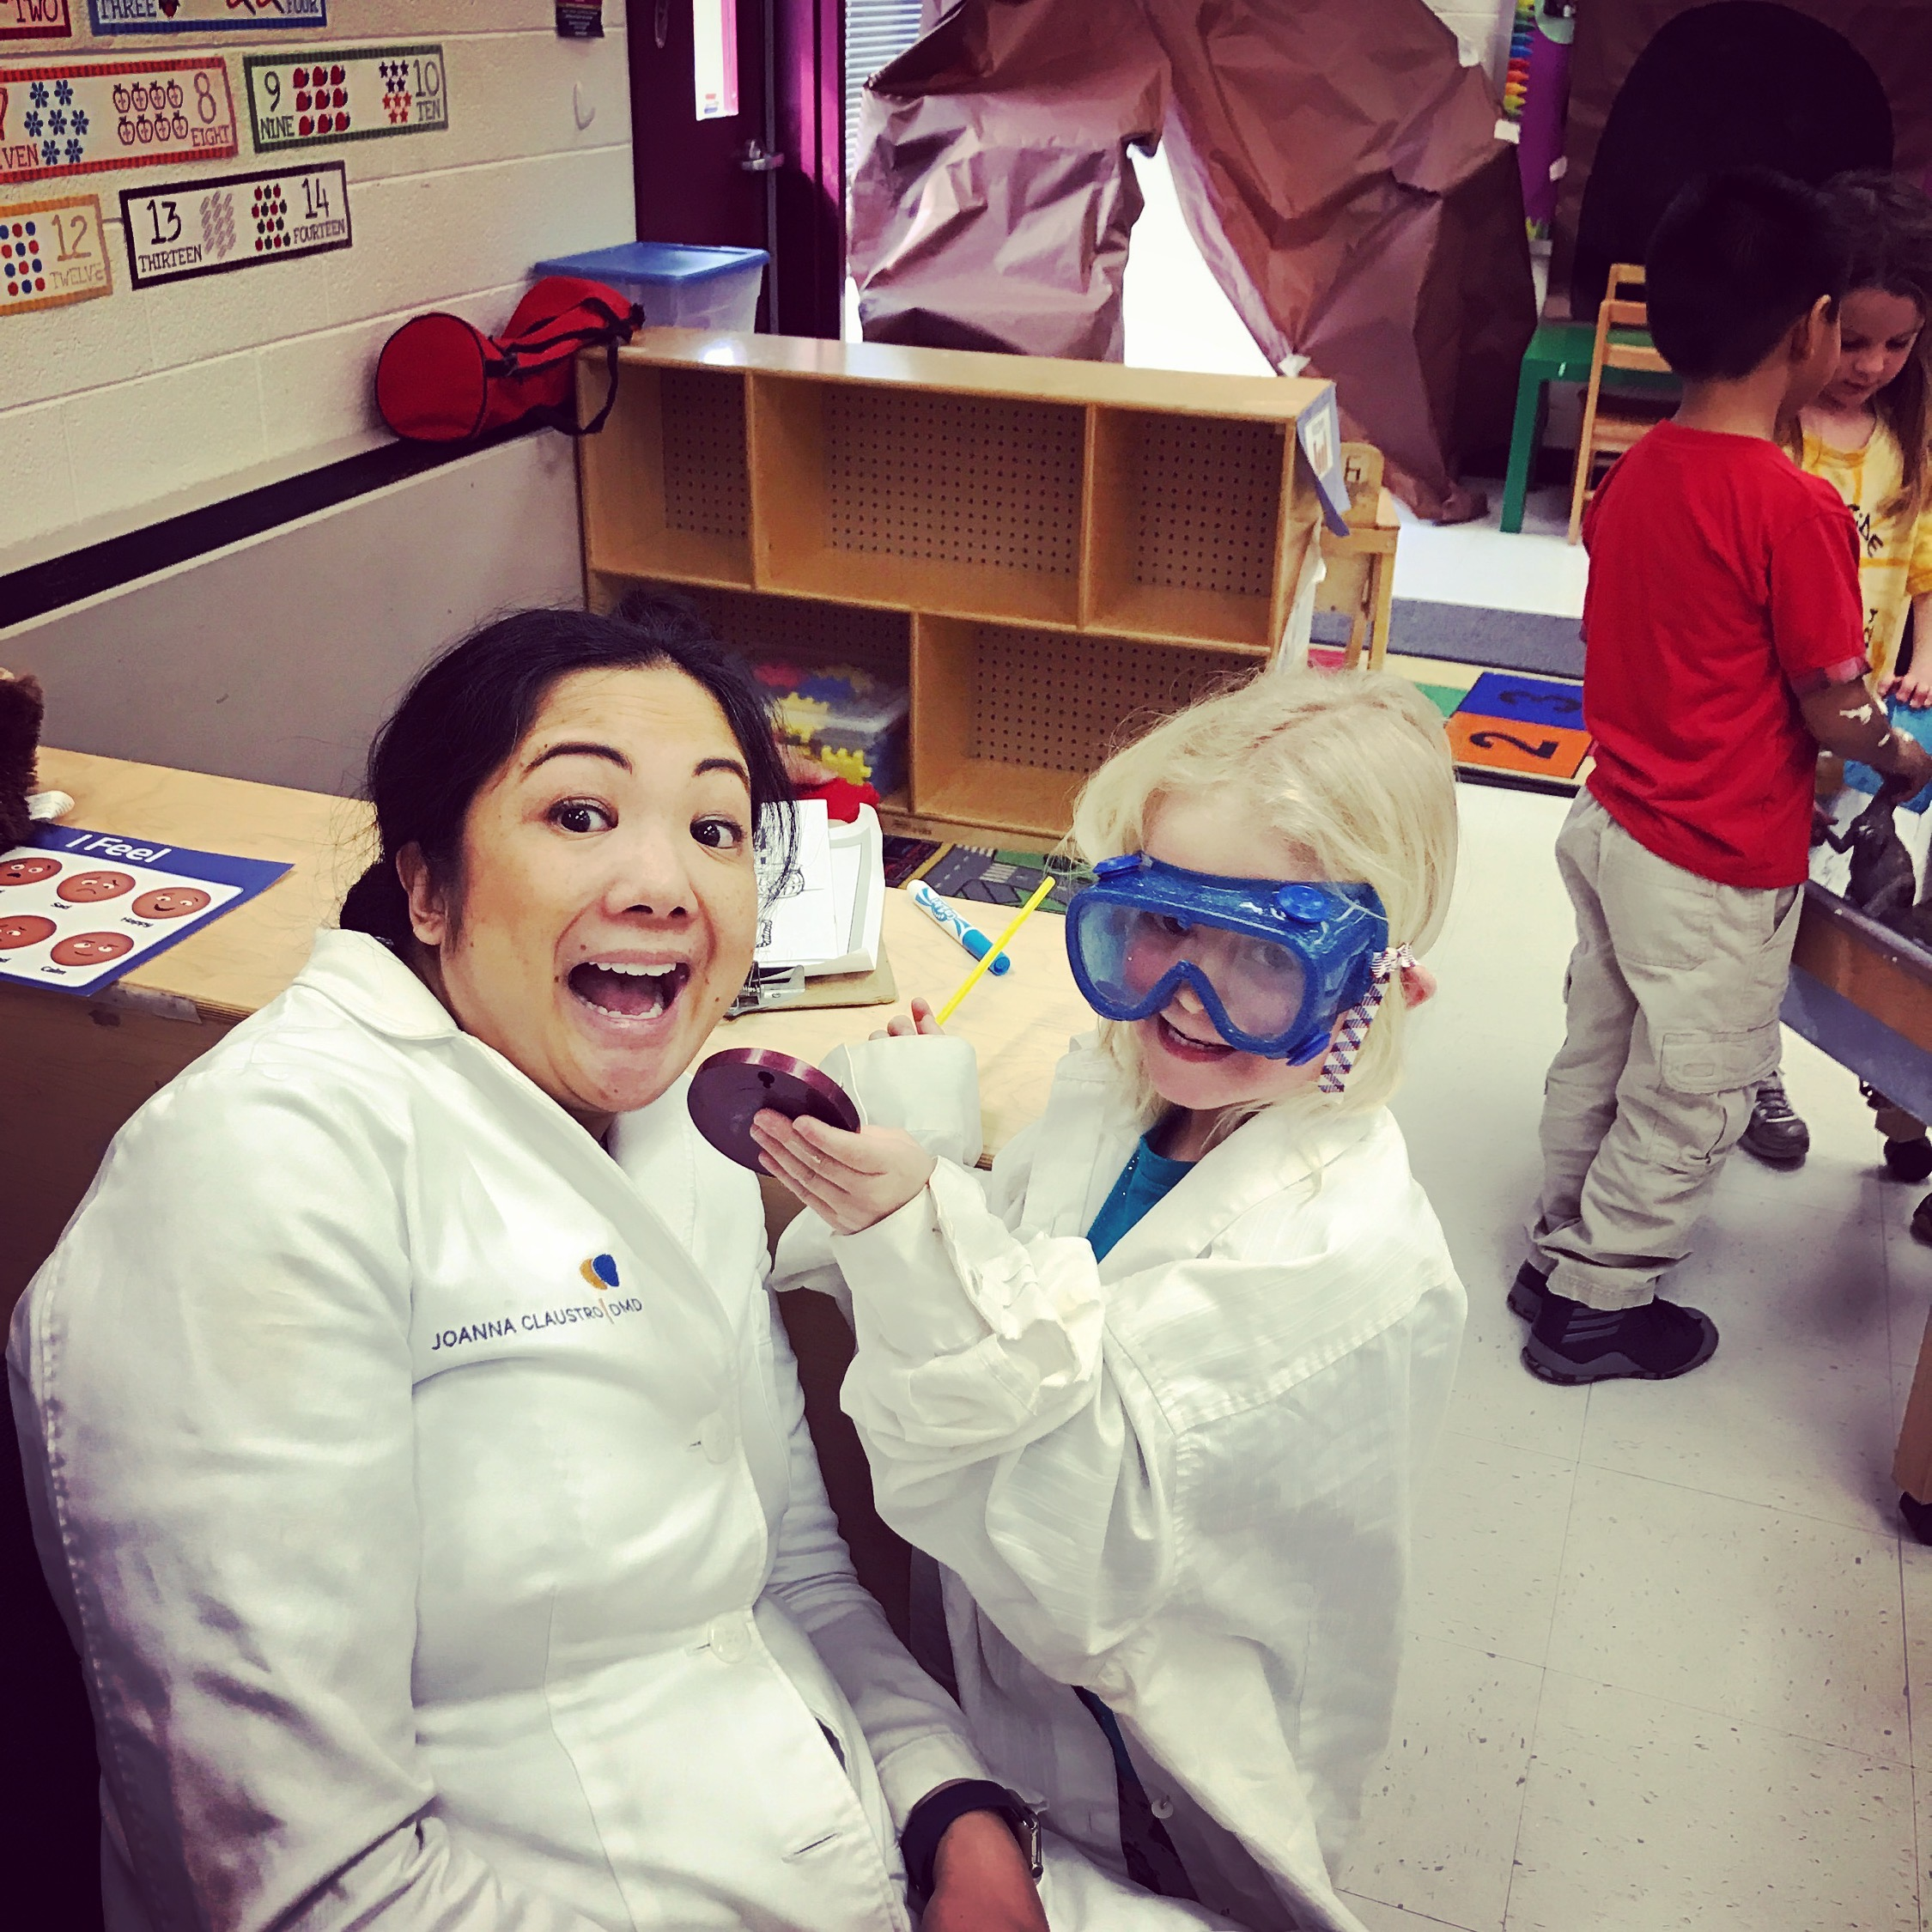 Teaching kids at local classrooms on how to properly care for their teeth... and that dental visits can be fun!